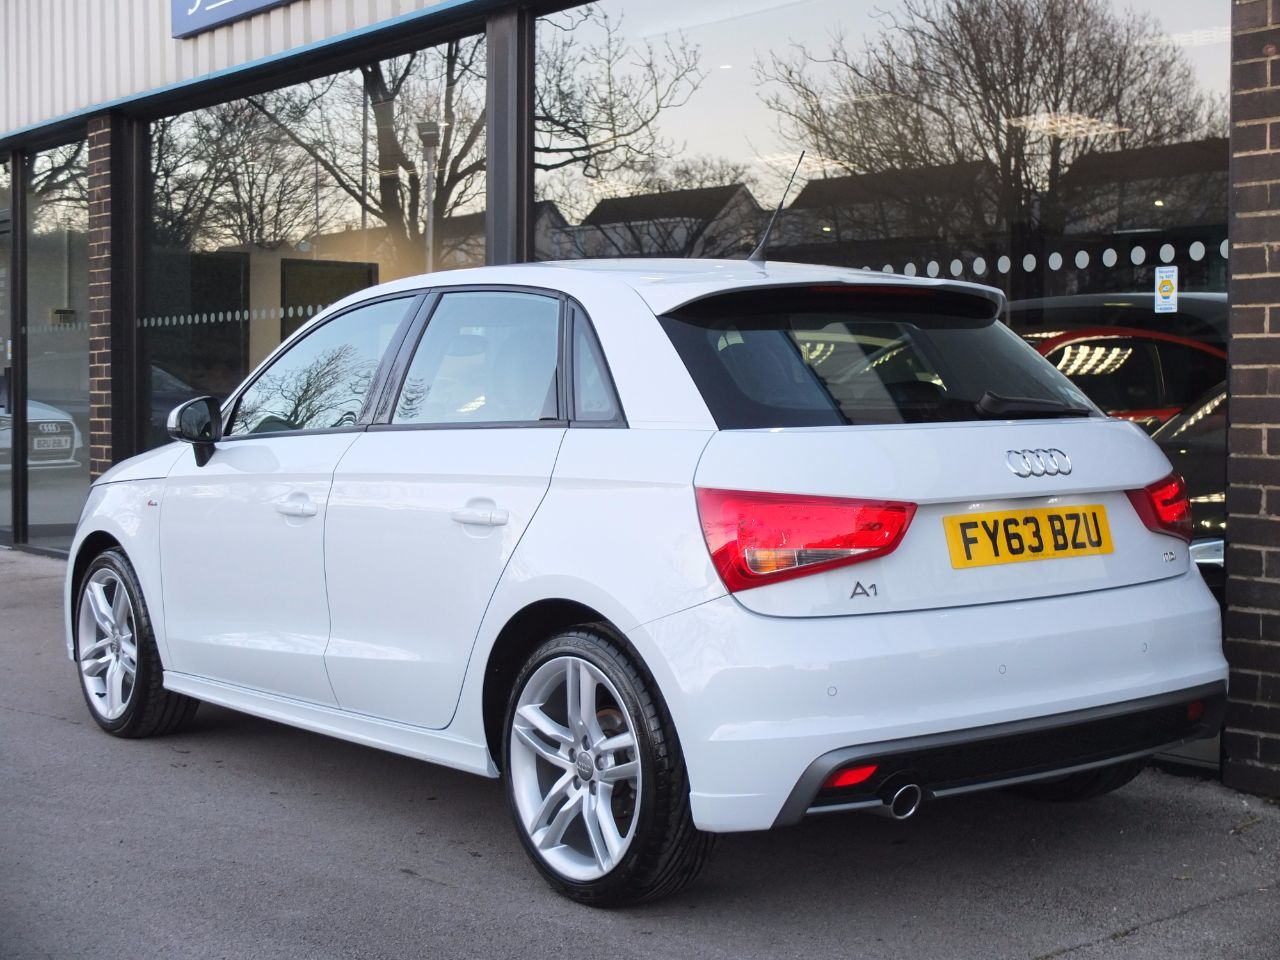 used audi a1 sportback 1 6 tdi s line 5 door for sale in bradford west yorkshire fa roper ltd. Black Bedroom Furniture Sets. Home Design Ideas